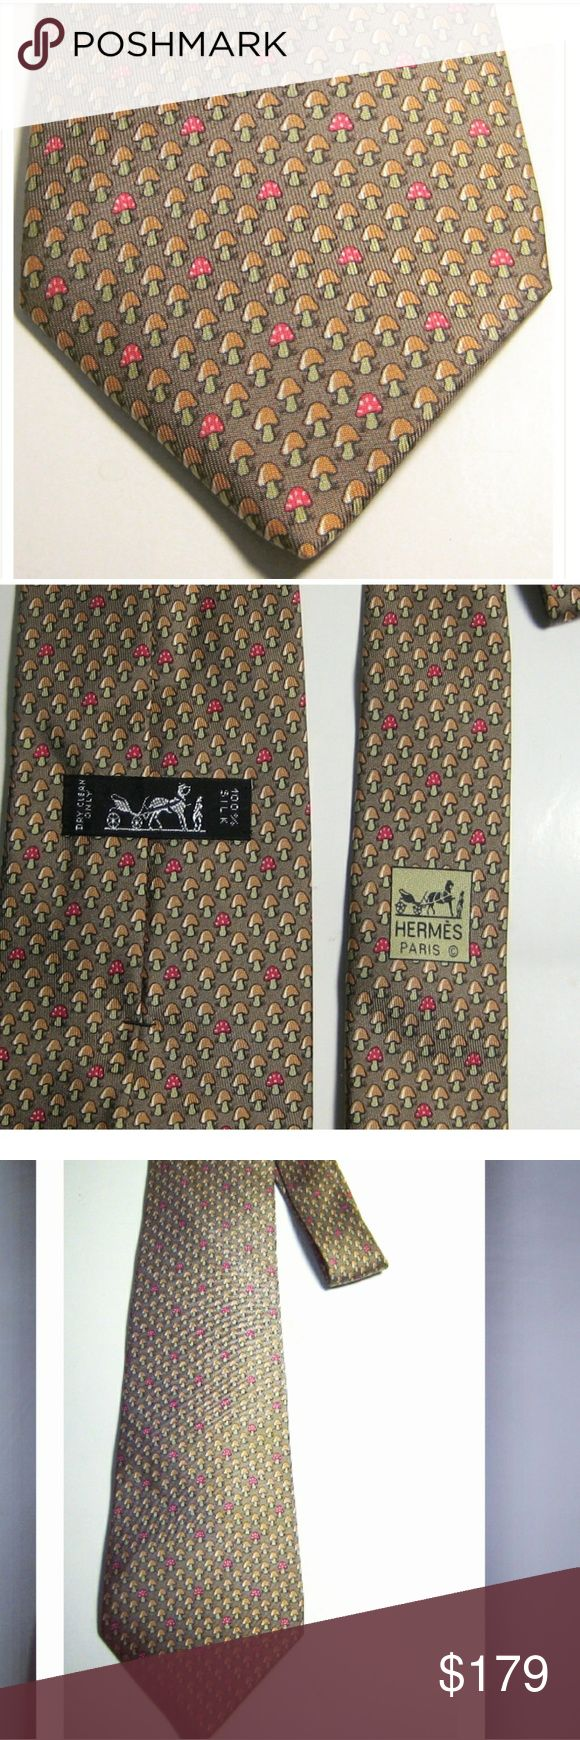 "HERMES 7923 MA Rich Brown Red Mushroom Plant Long HERMES 7923 MA Rich Brown Red Mushroom Plant Long 61"" Authentic 100% Silk Tie Accessories Ties"